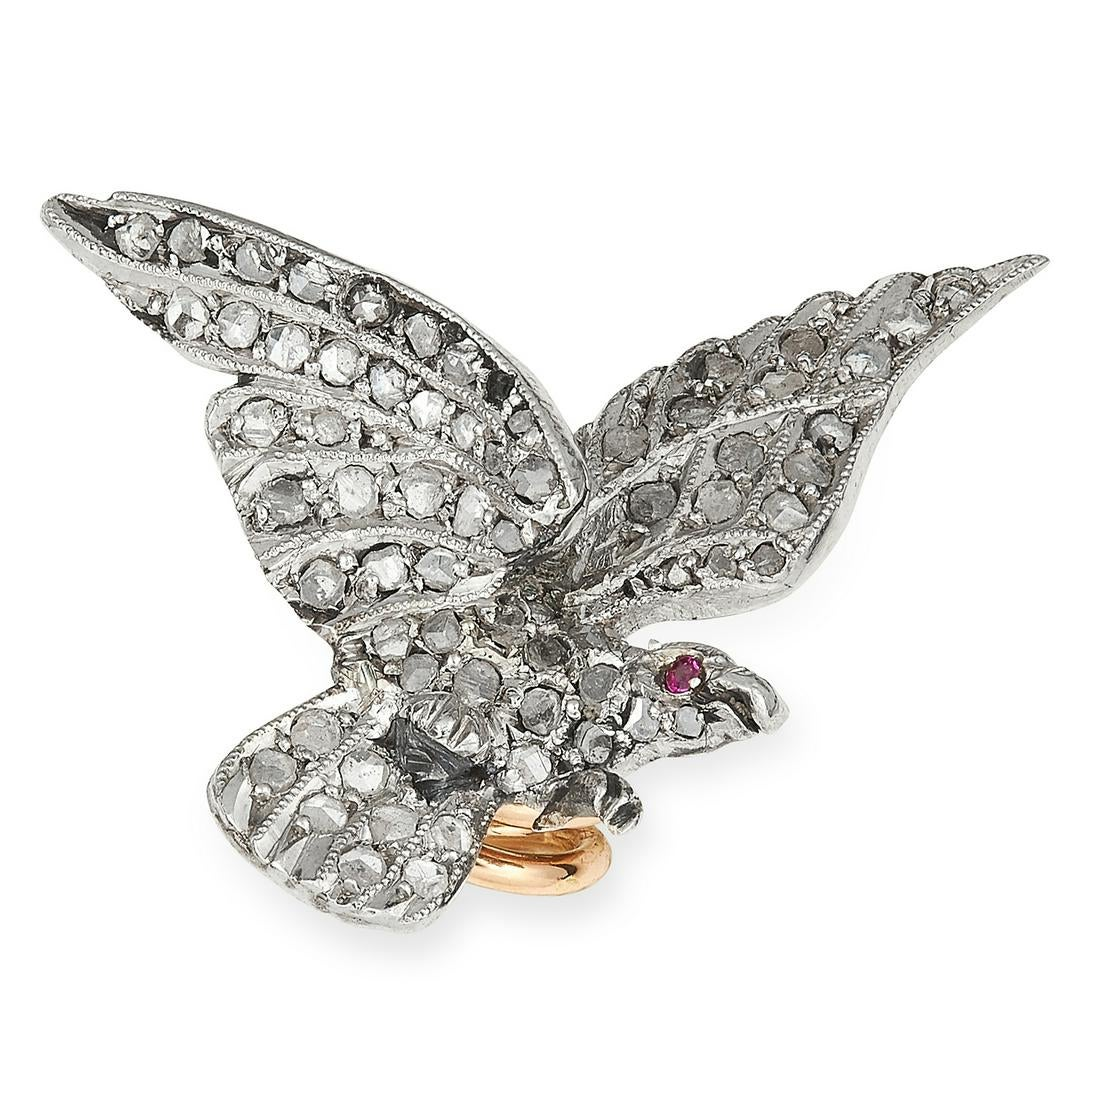 ANTIQUE VICTORIAN DIAMOND AND RUBY EAGLE PIN